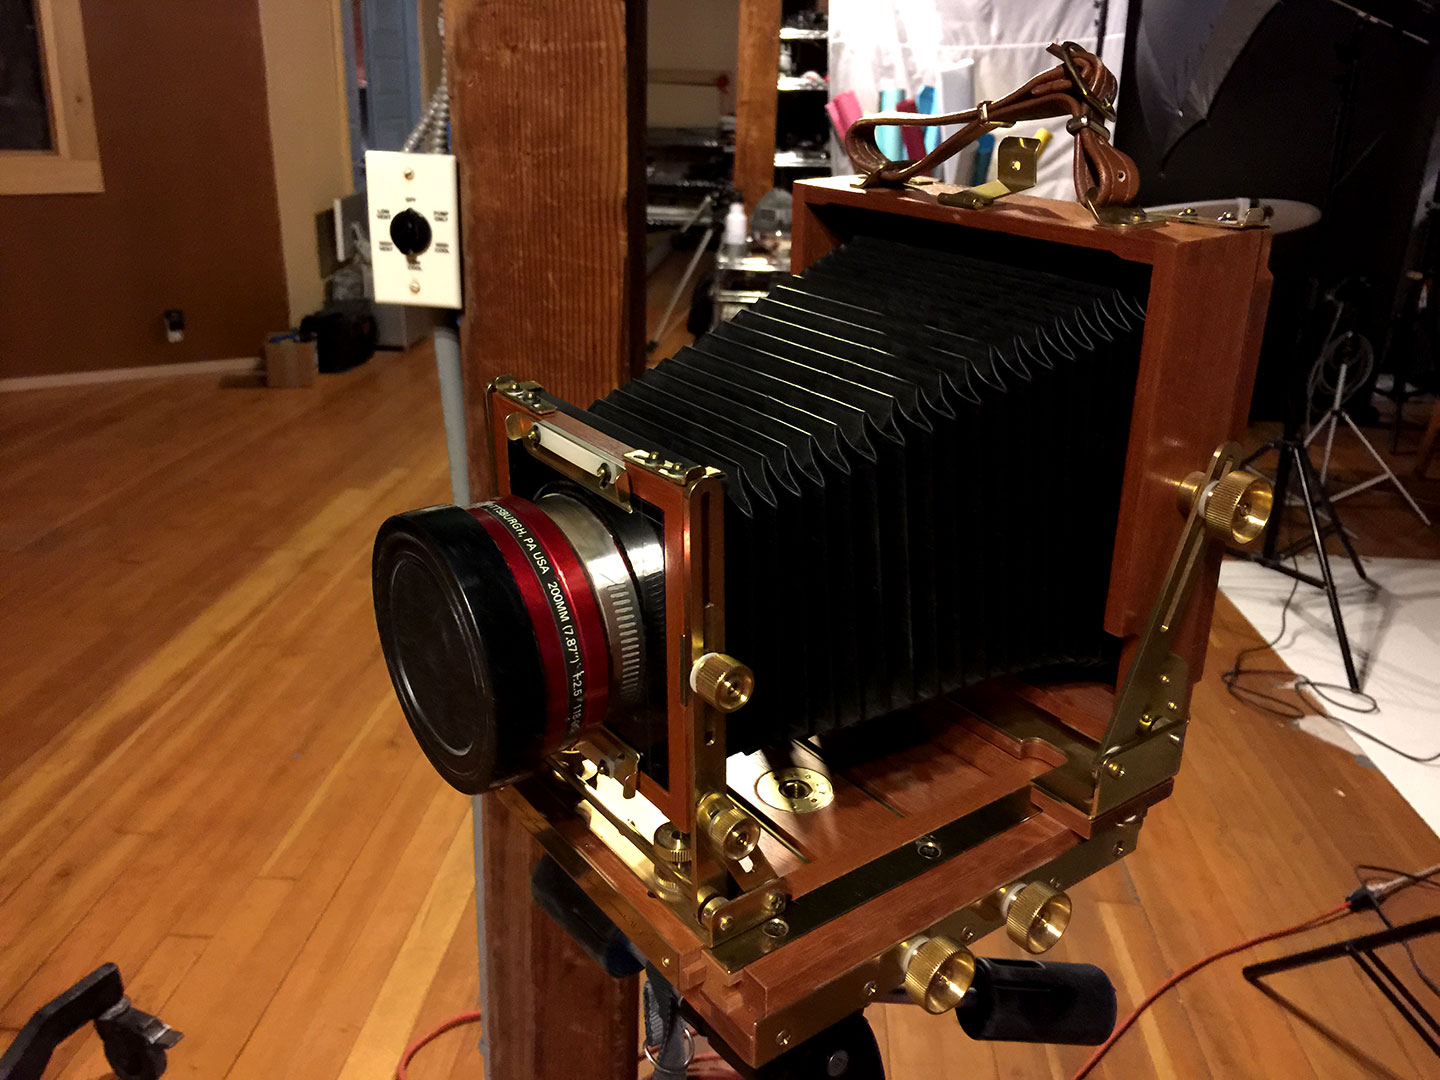 8x10 View Camera